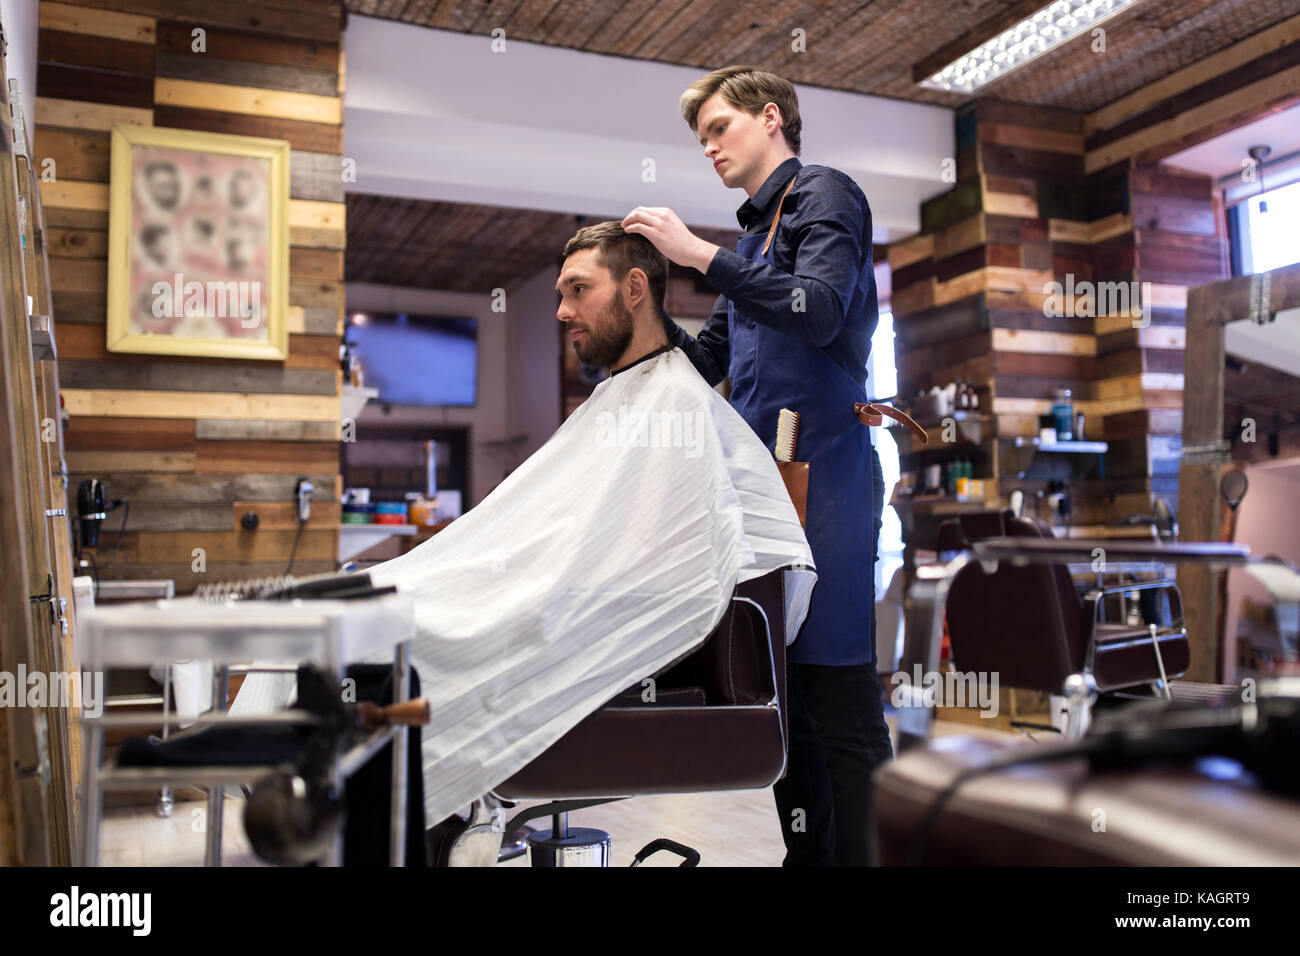 man and barber styling hair at barbershop - Stock Image